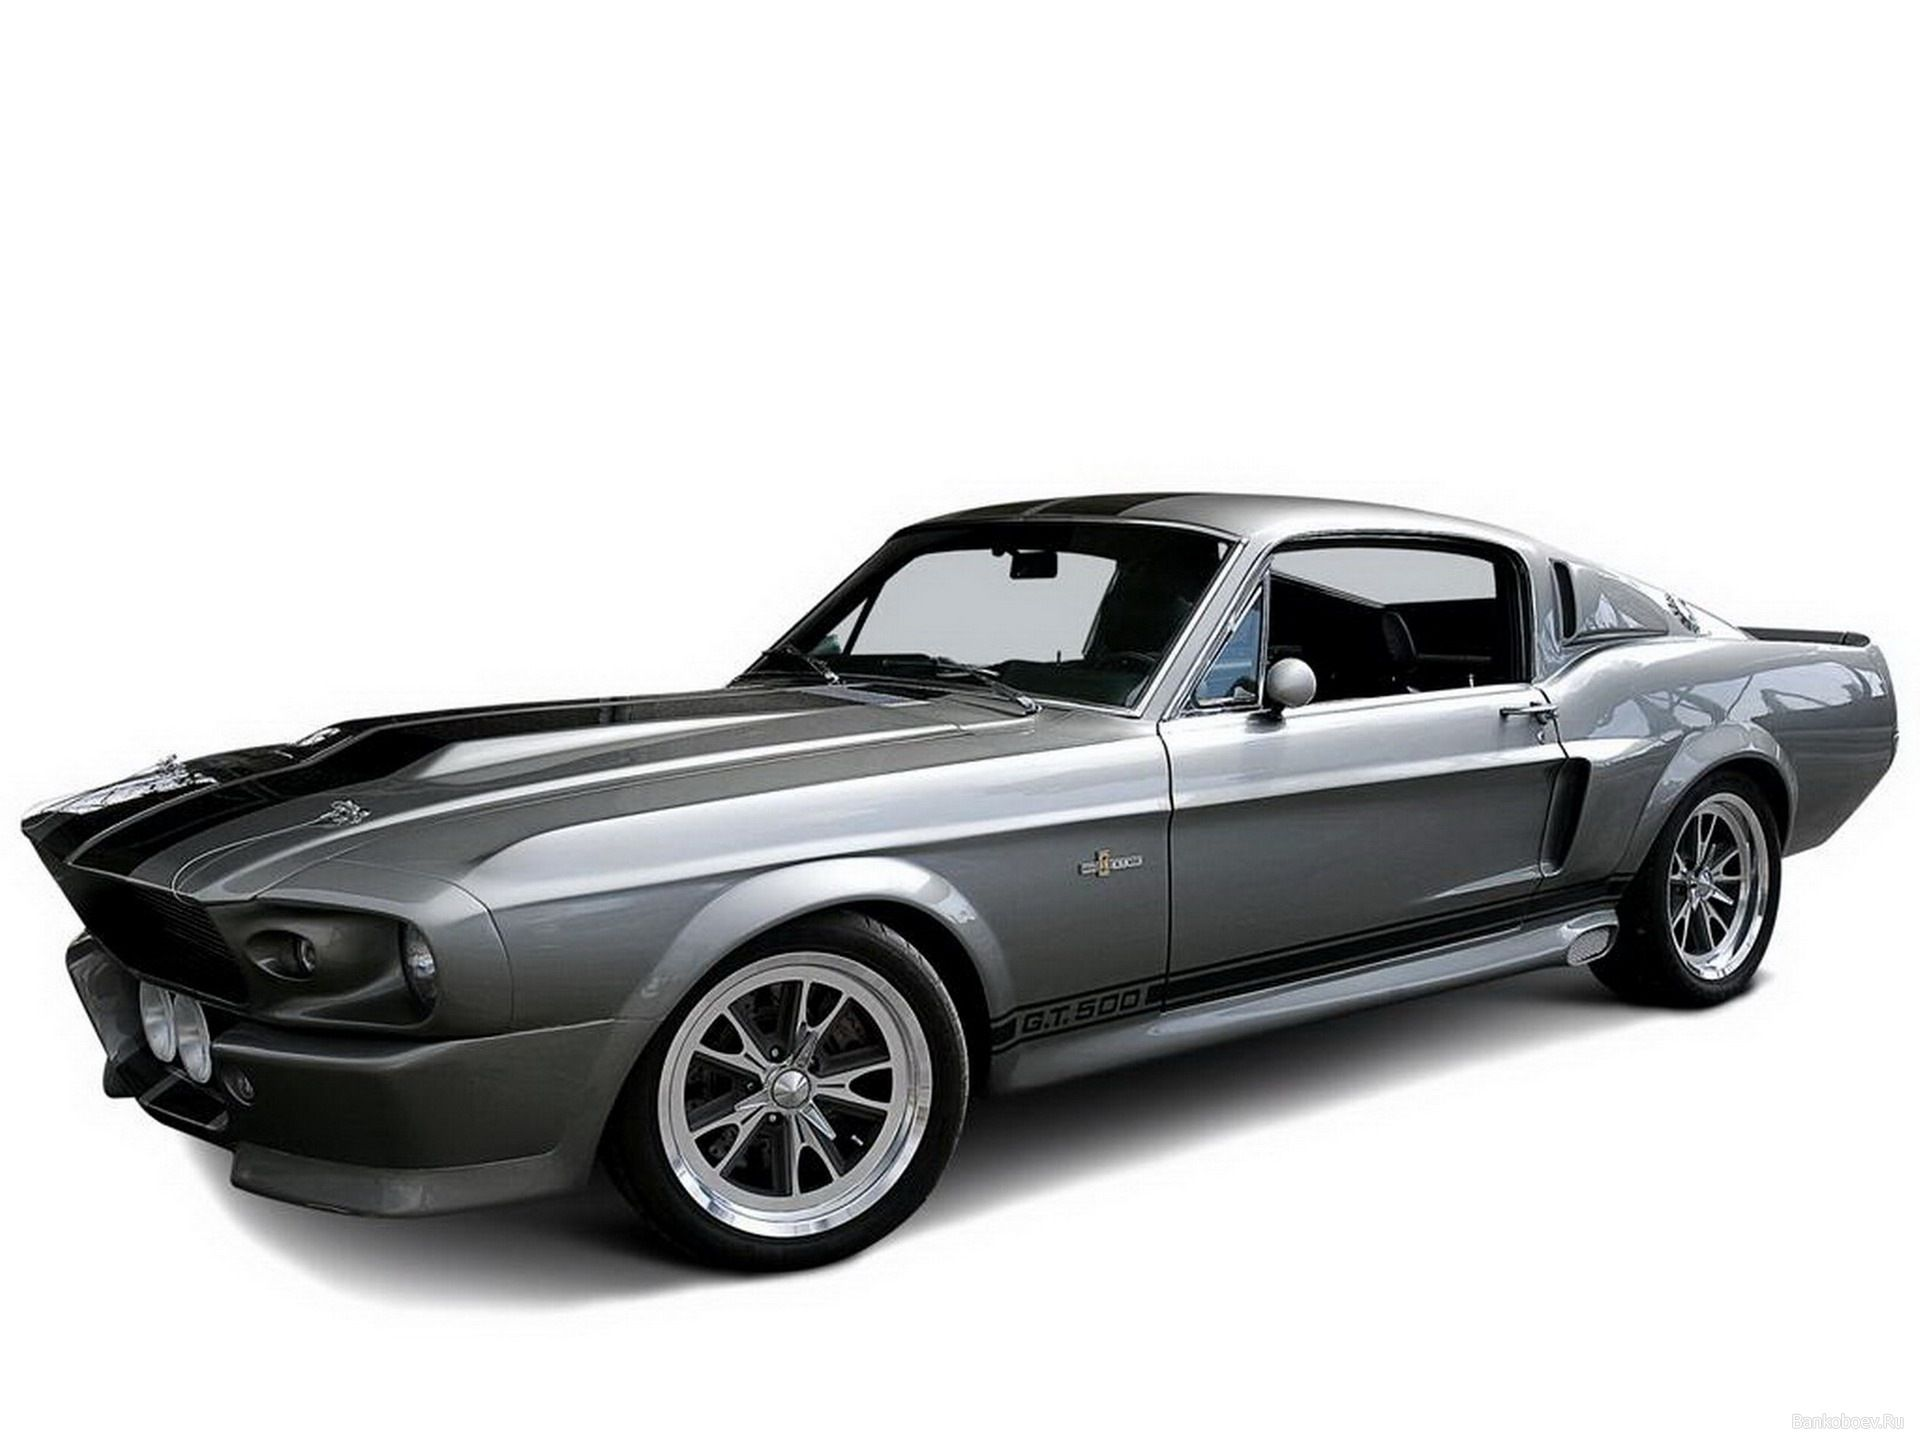 Ford Mustang Gt 500 1967 (1920×1440)